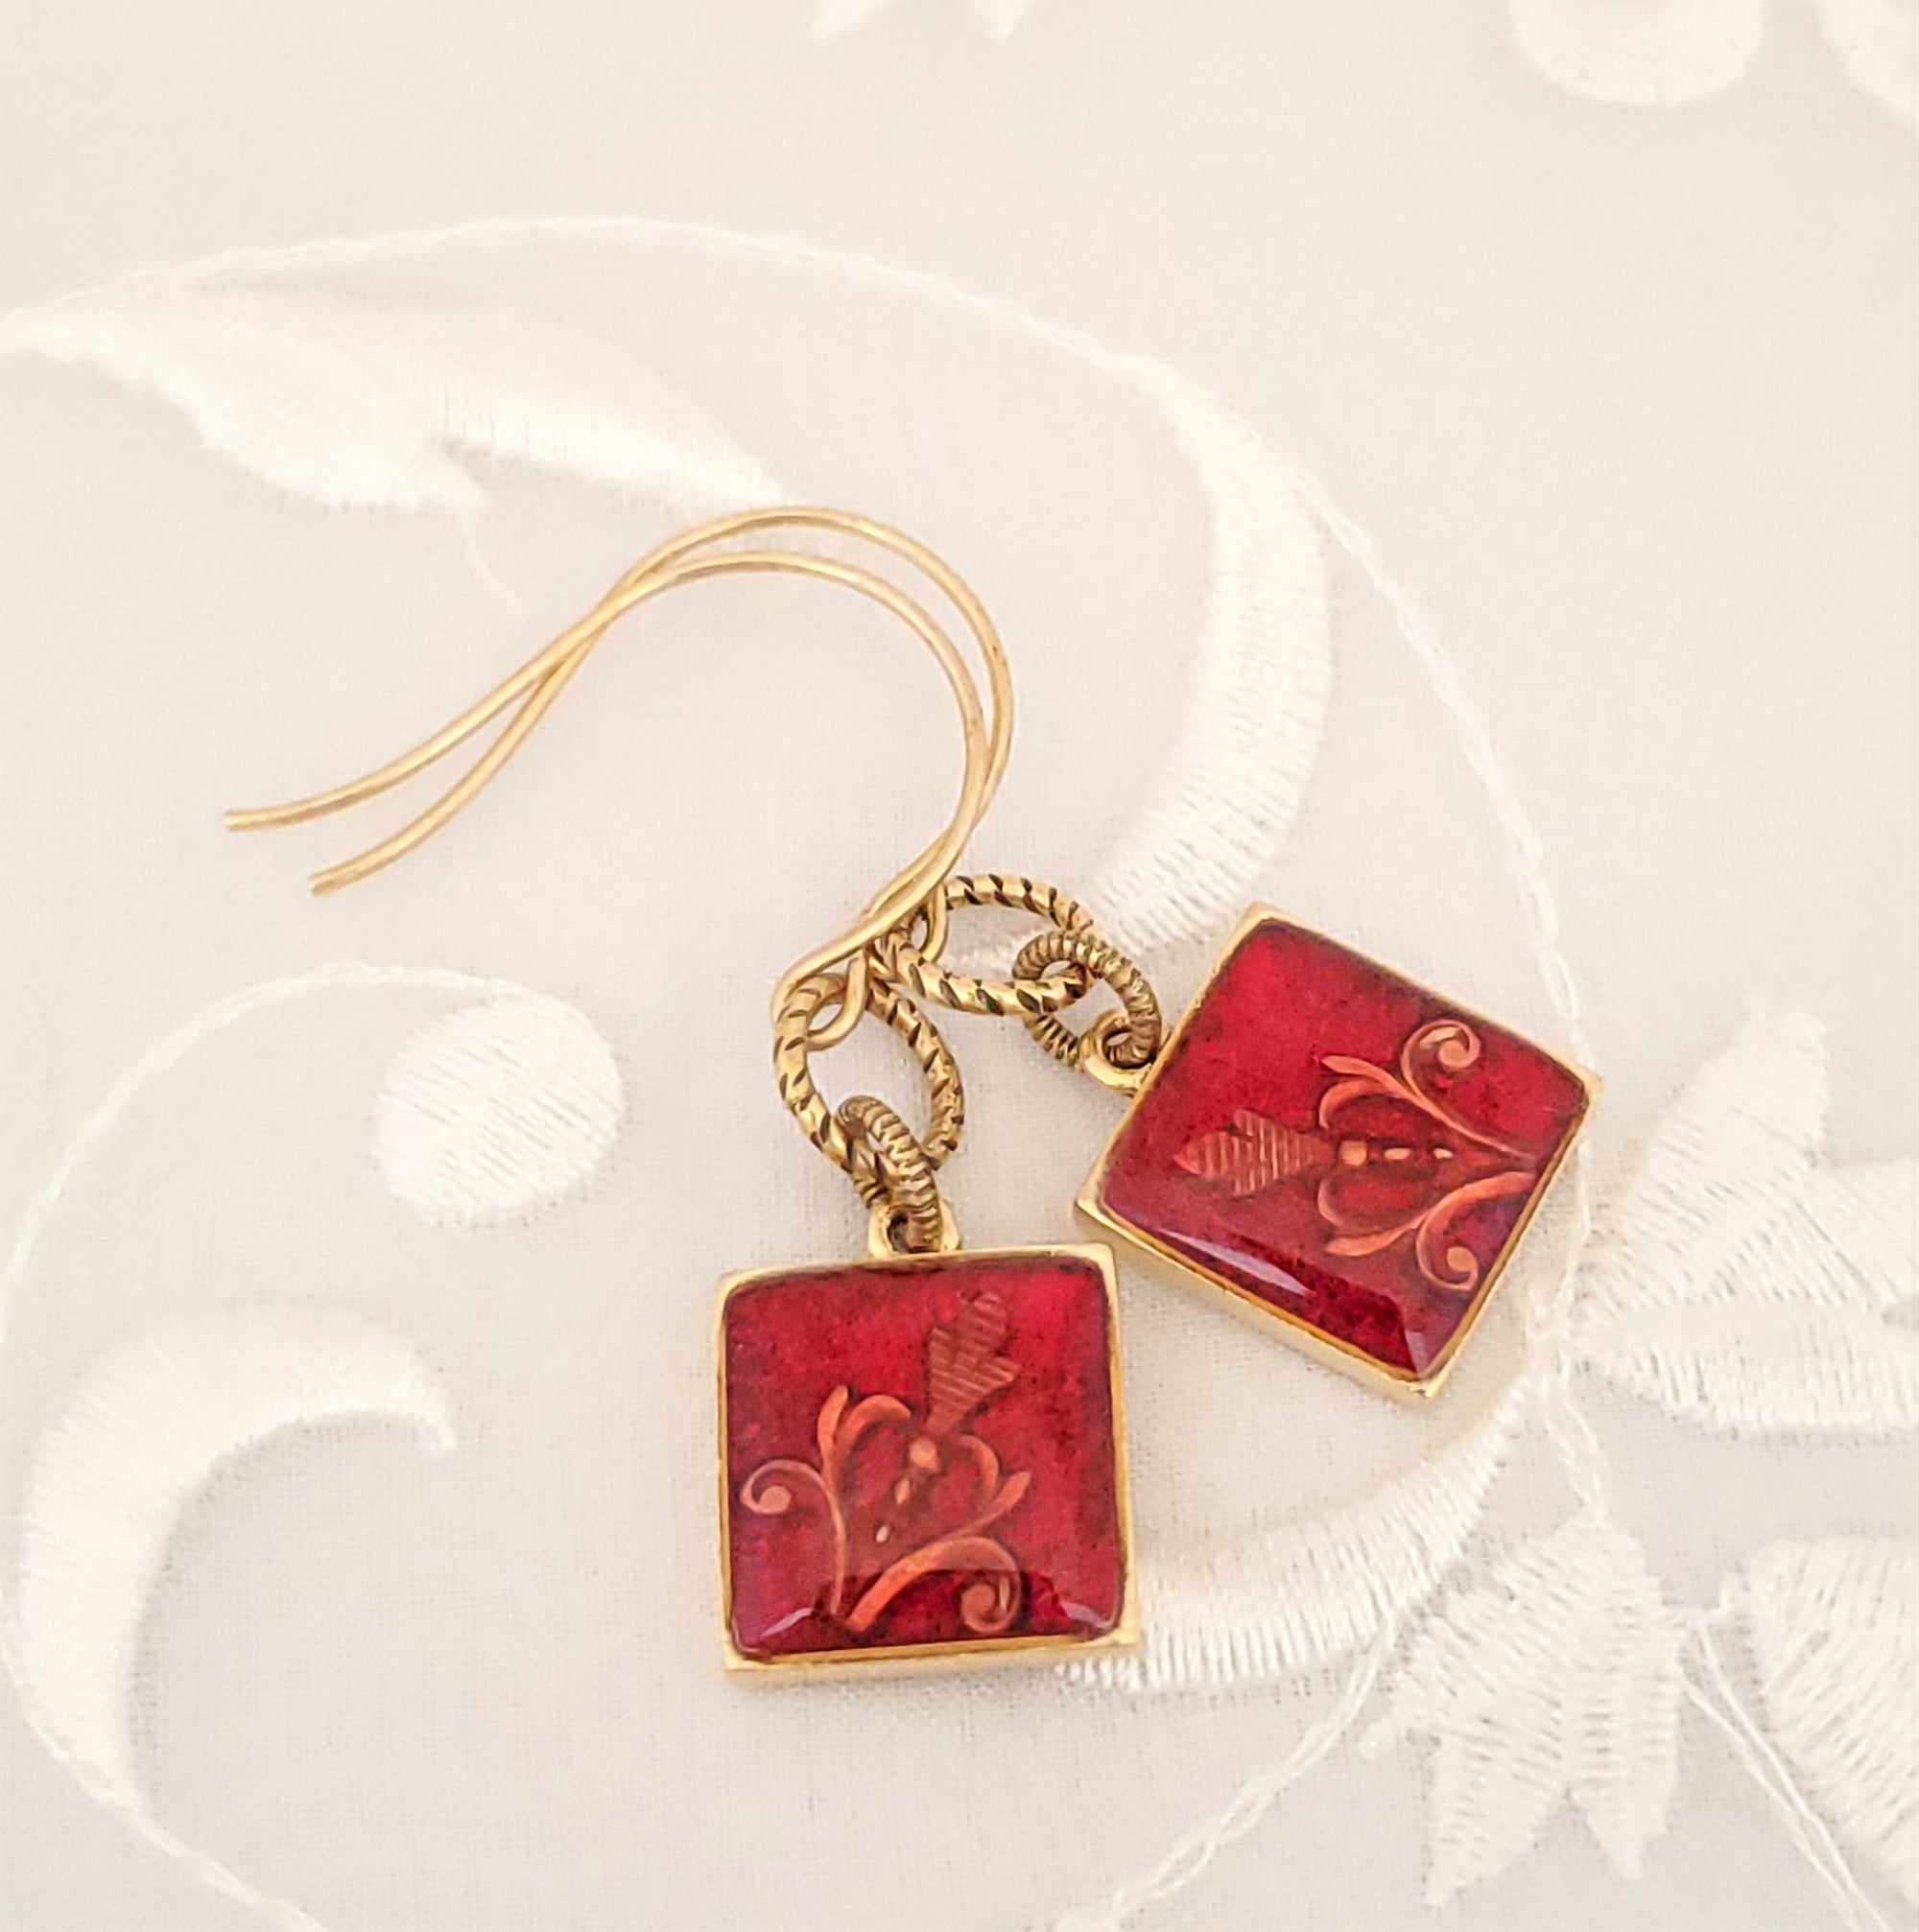 Antique Gold Square Earrings with Red Resin